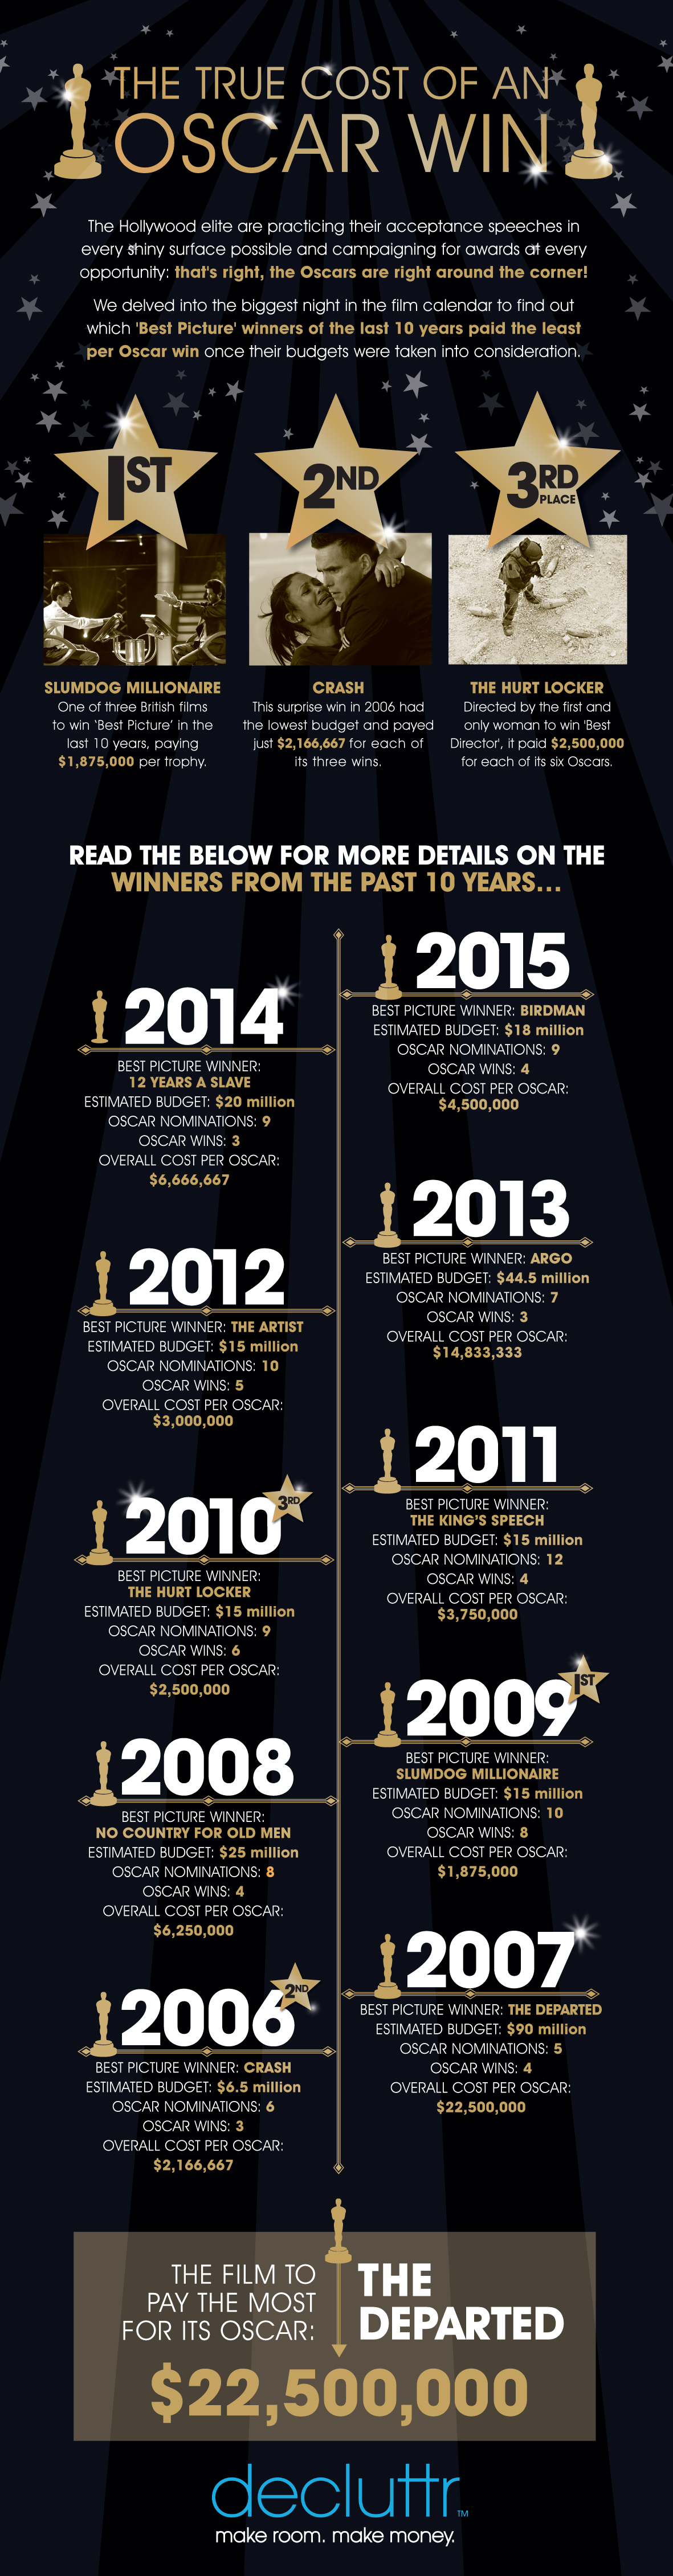 THE OSCARS INFOGRAPHIC DECLUTTR